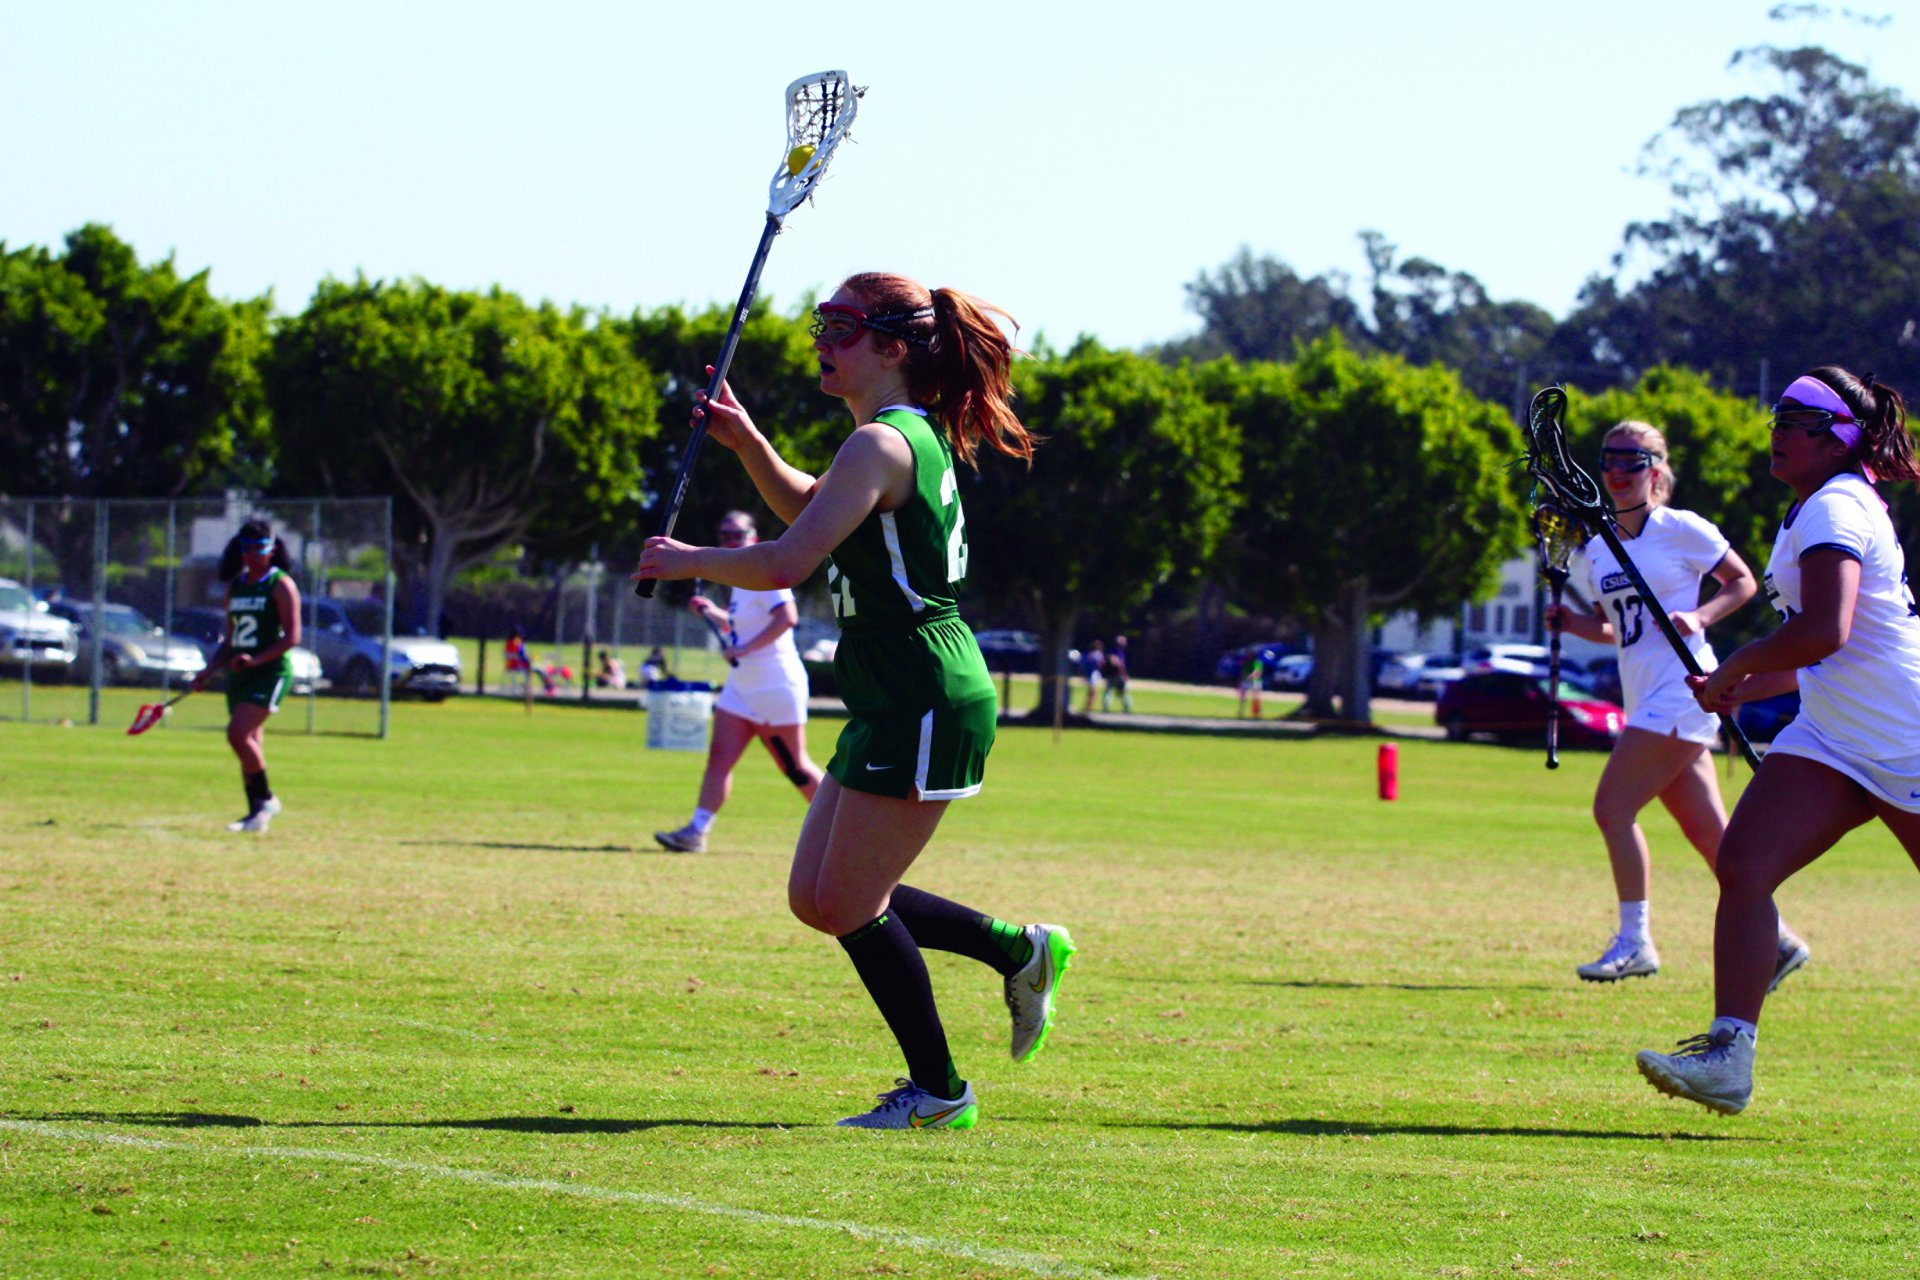 Kiya Guire, #21 for women's lacrosse, gets ready to make a shot. | Photo by Thomas Lal